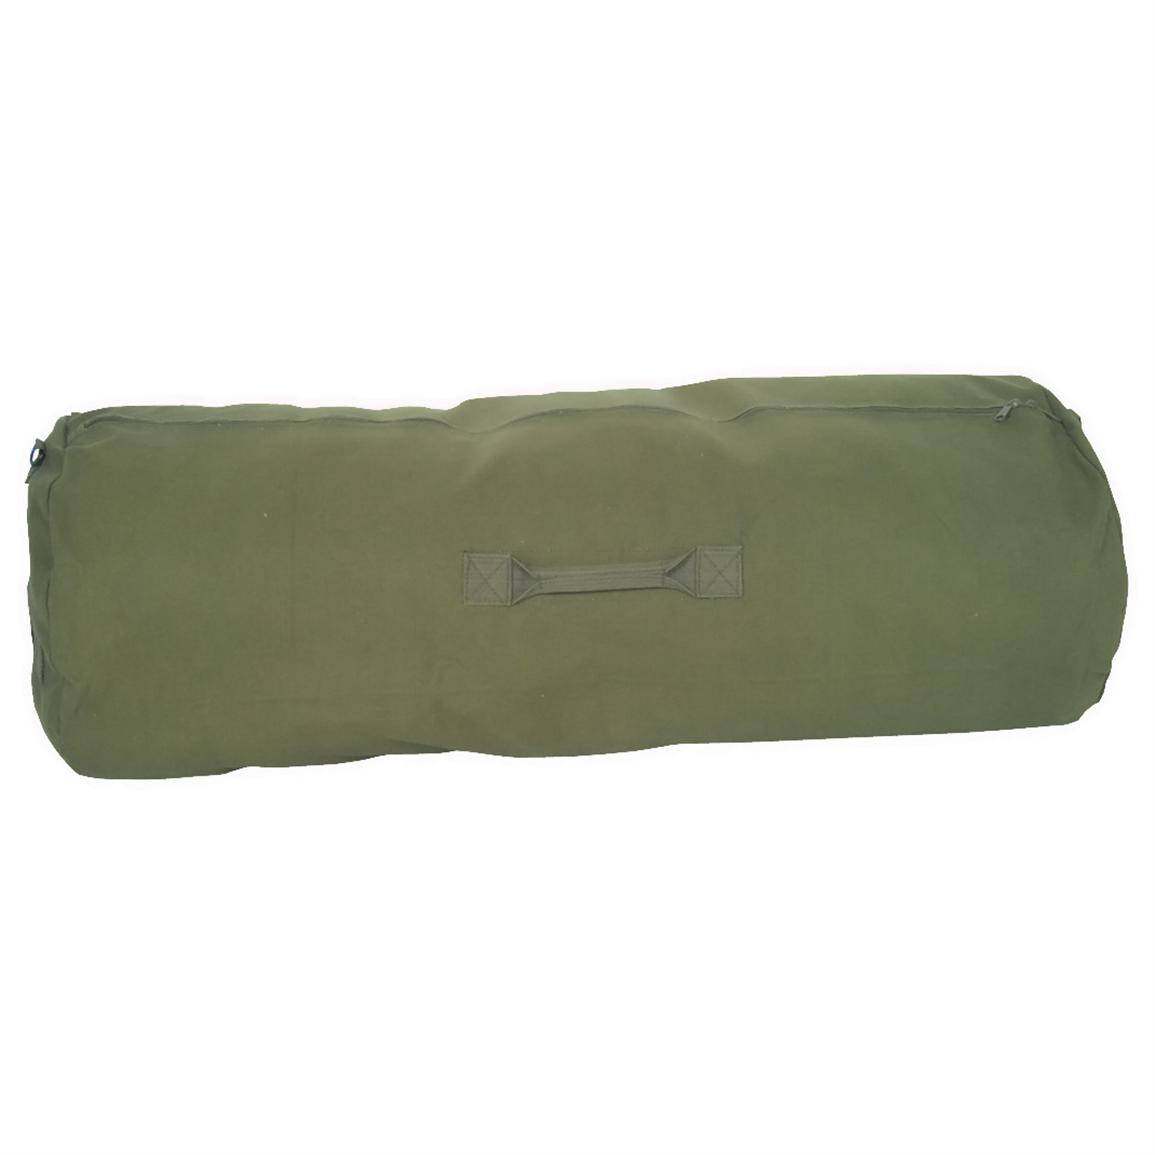 Fox Outdoor™ GI-style Duffel Bag, Olive Drab